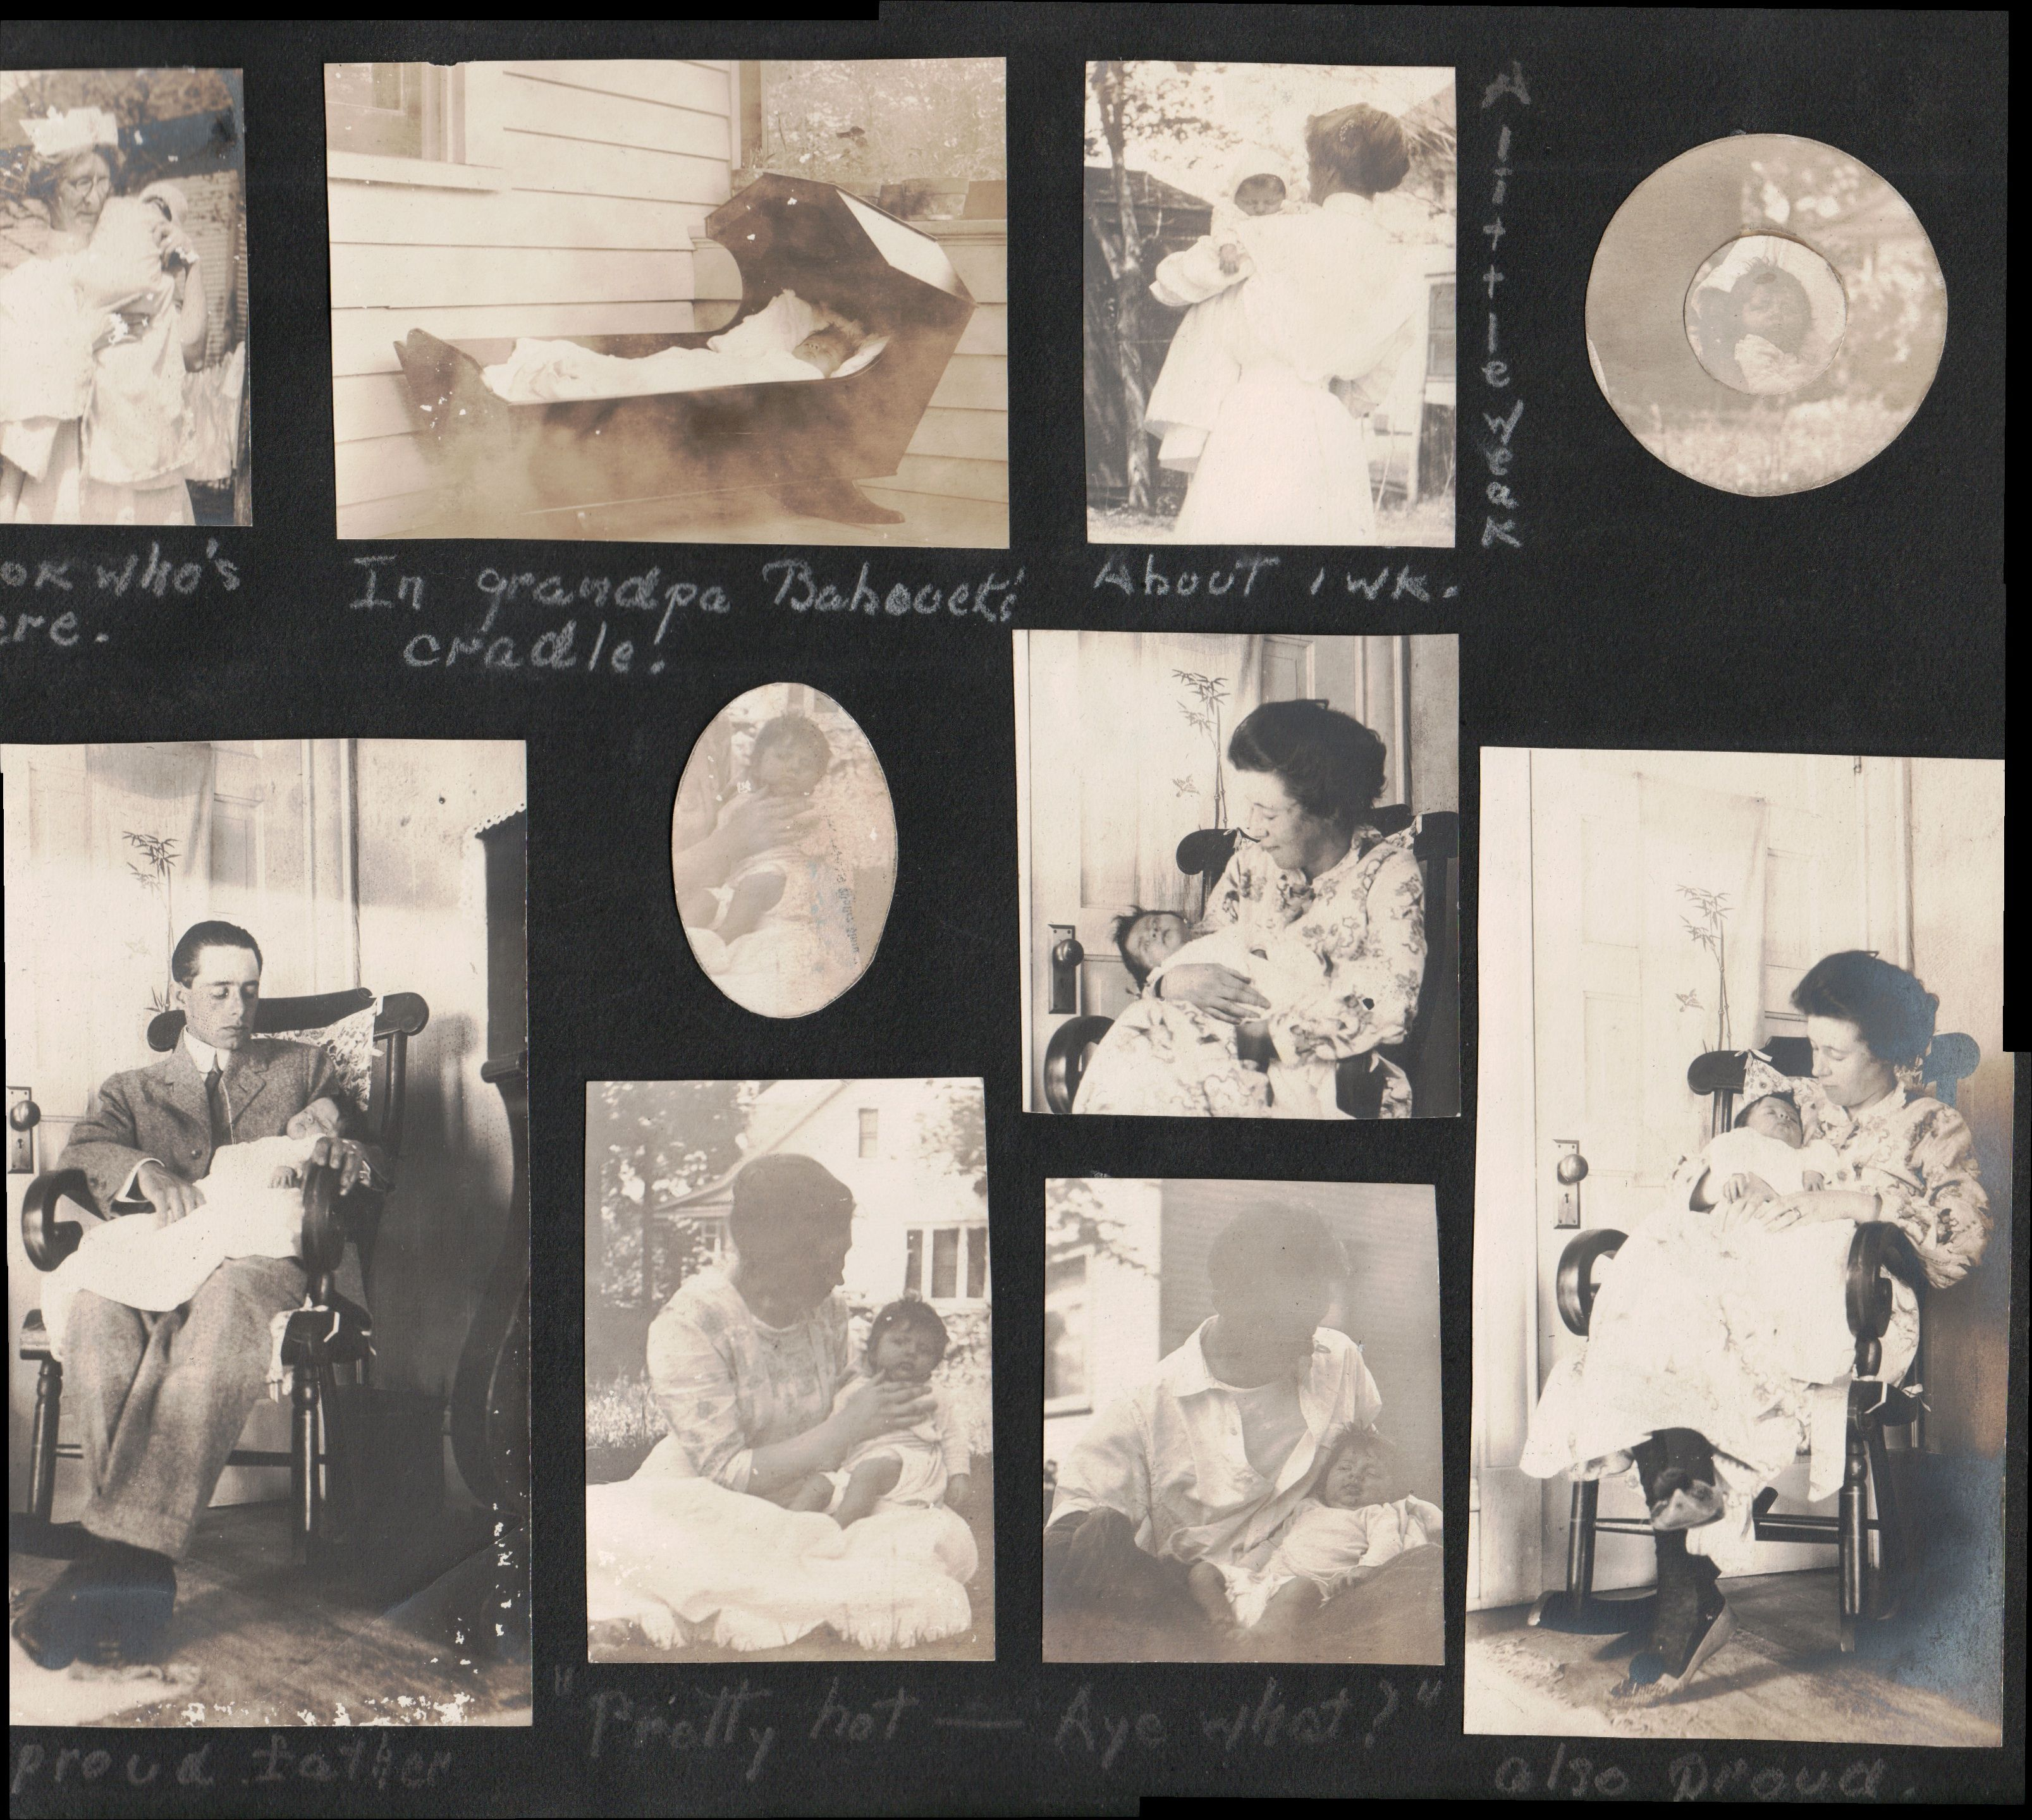 By Chris Little My great grandmother Ethel was an intermittently